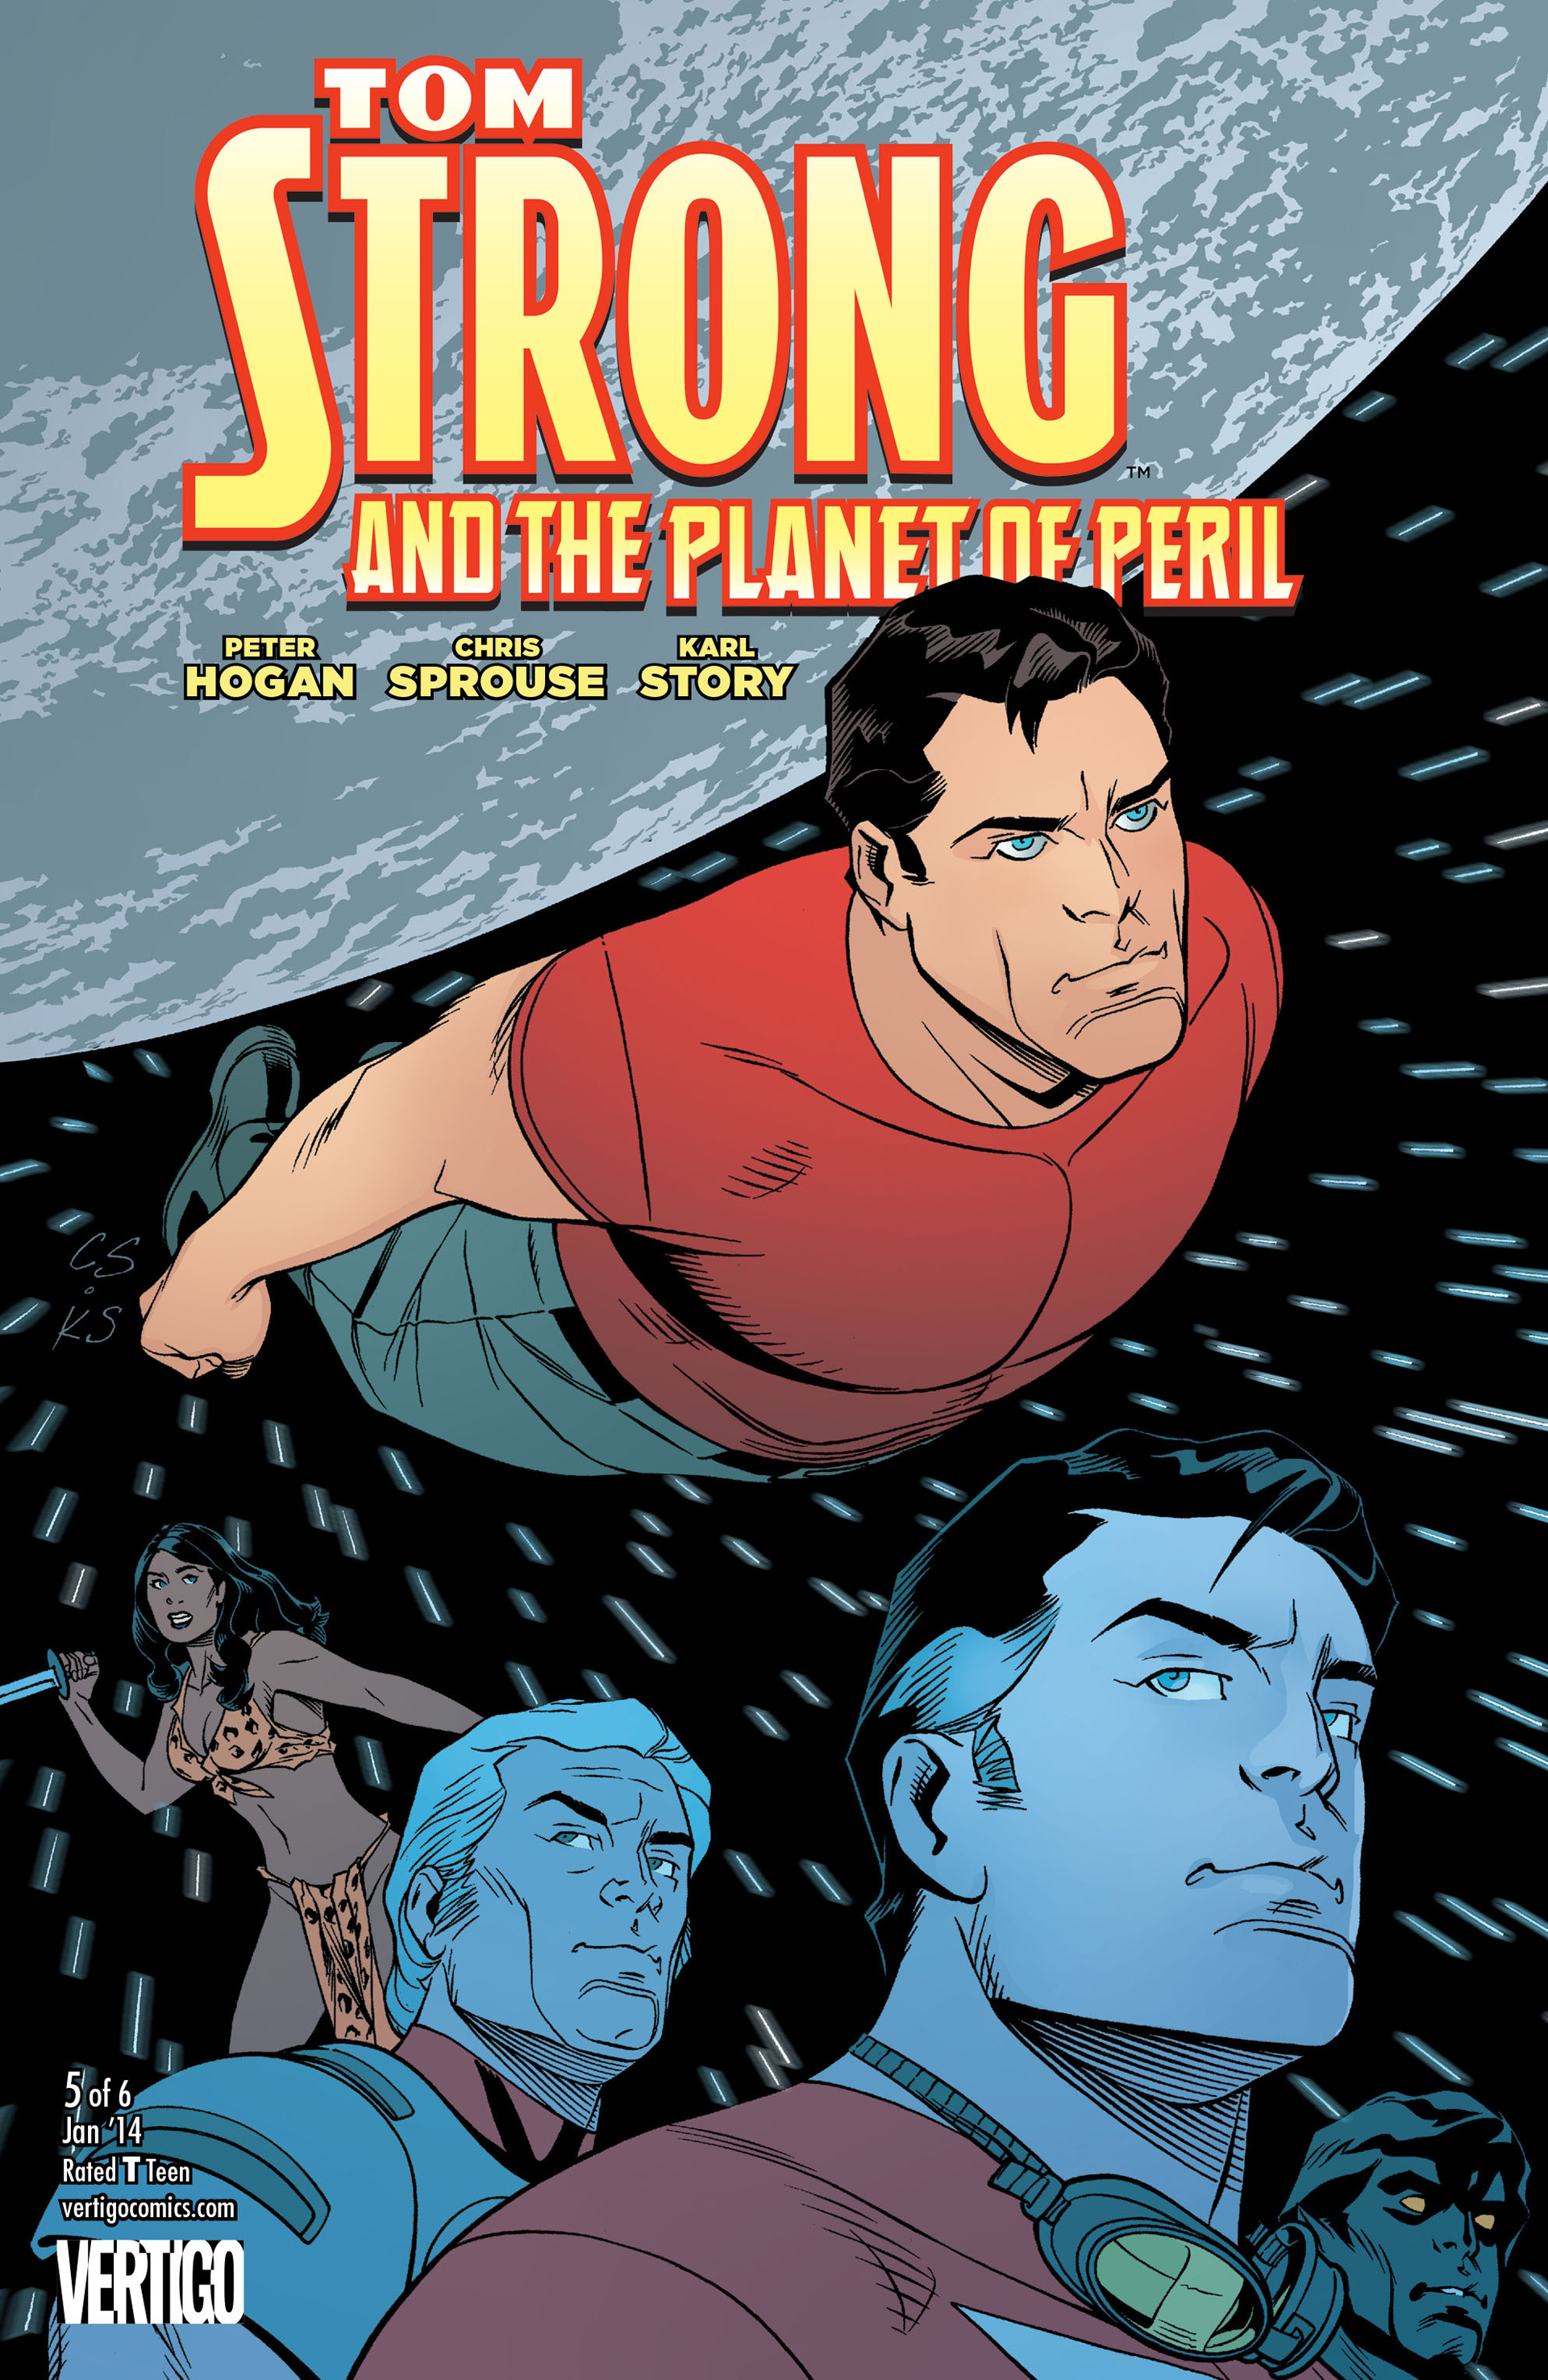 Tom Strong and the Planet of Peril Vol 1 5